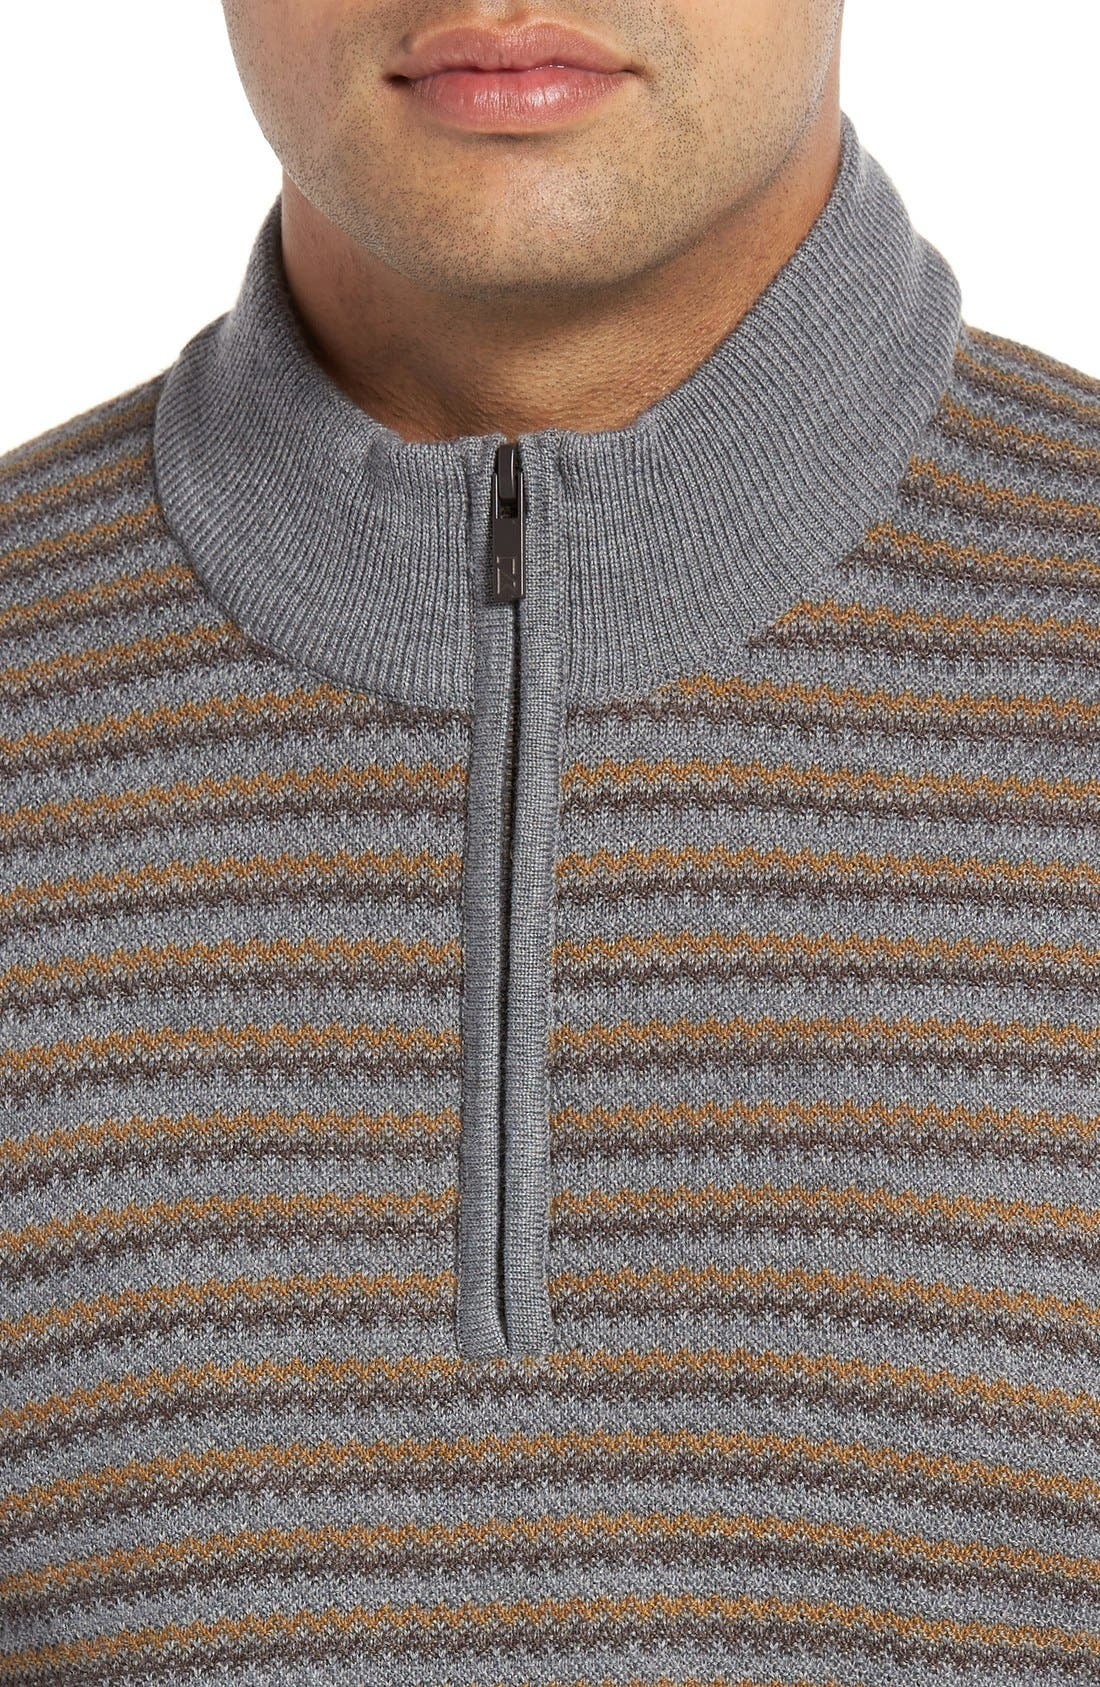 'Douglas Range' Quarter Zip Stripe Wool Blend Sweater,                             Alternate thumbnail 4, color,                             Brown/ Multi